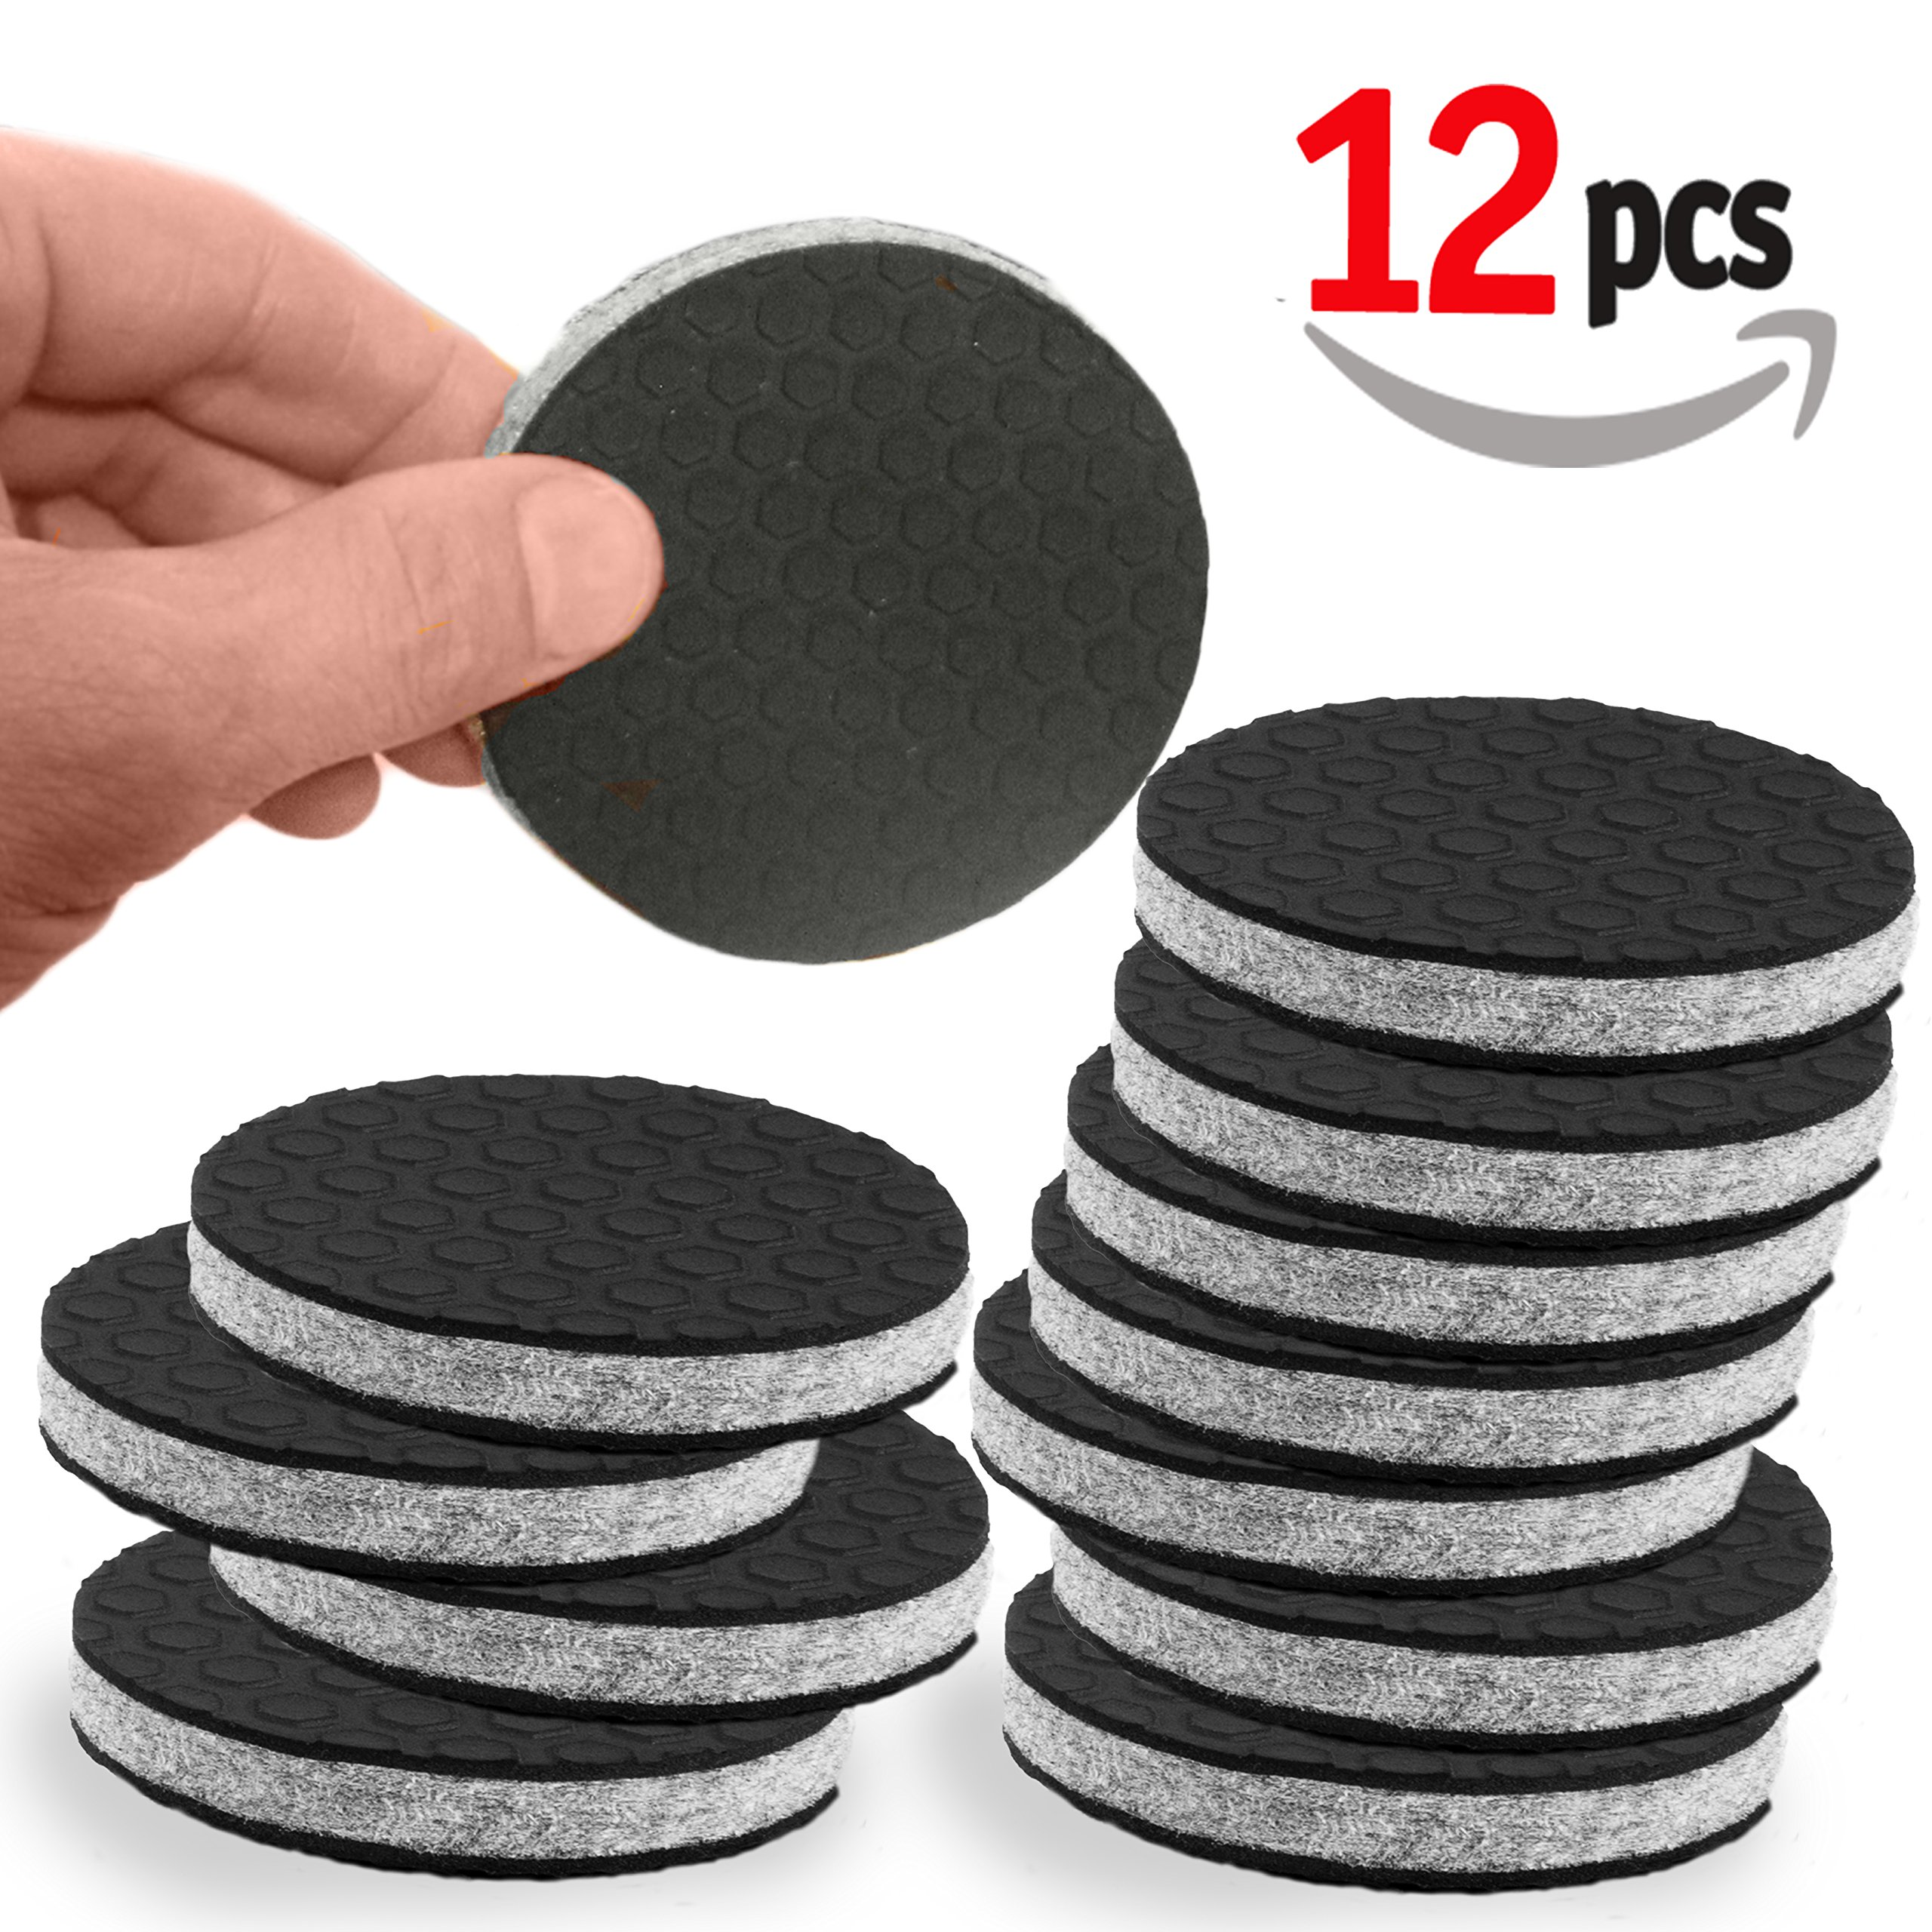 """SlipToGrip"" NON SLIP Furniture Pad Grippers - Large 3"" Furniture Grippers - Stop Furniture Slide - 12 Pack - Round Floor Pads - 3/8"" Heavy Duty Felt Core."